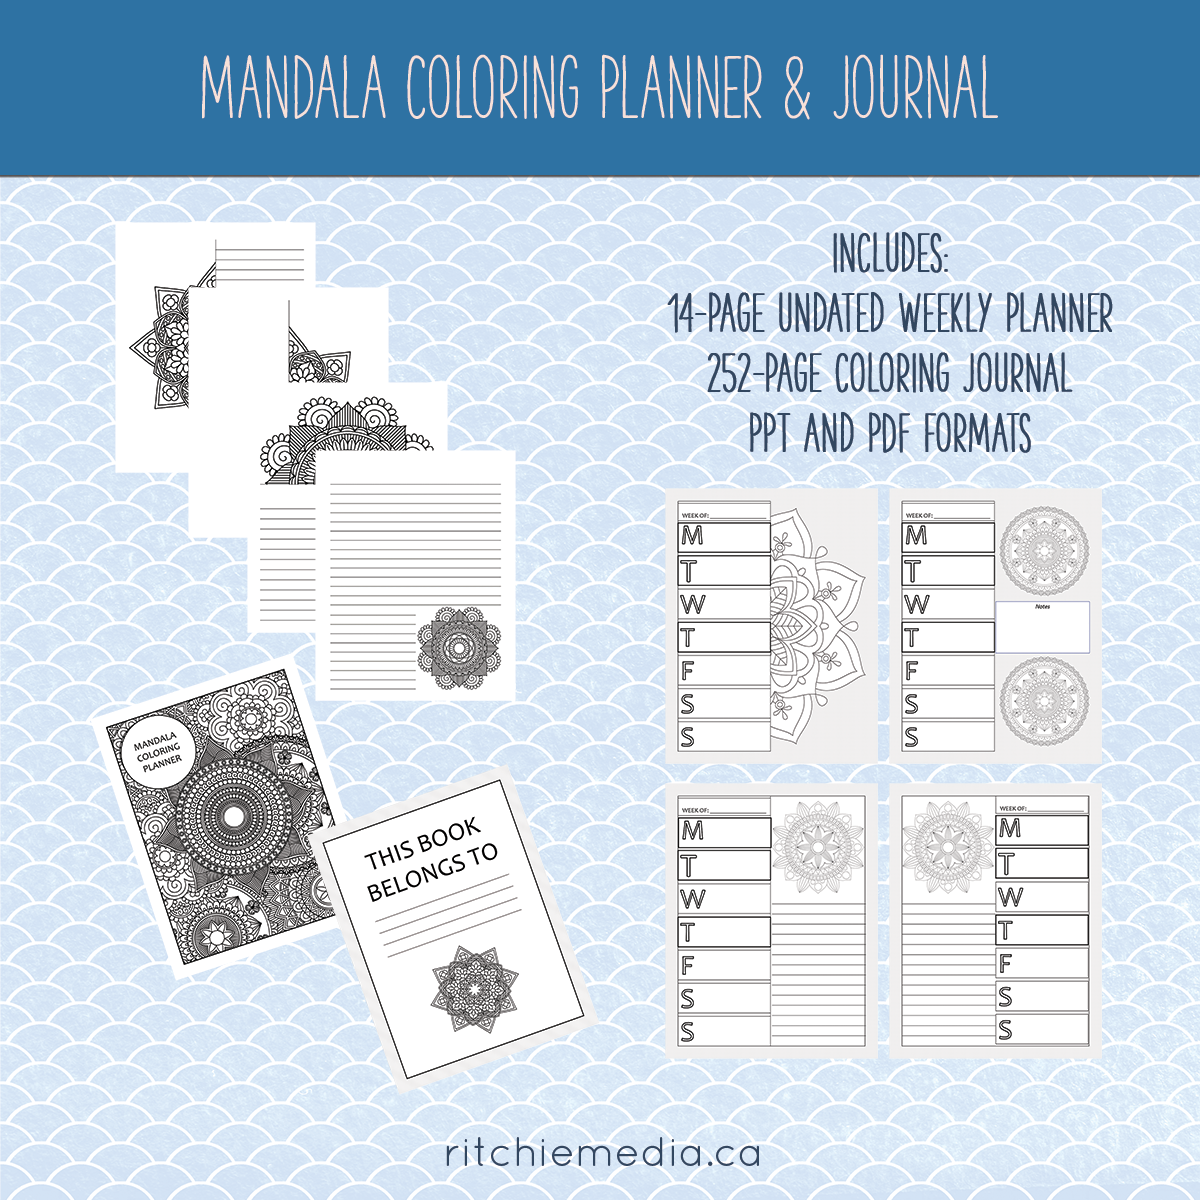 mandala coloring planner and journal promo